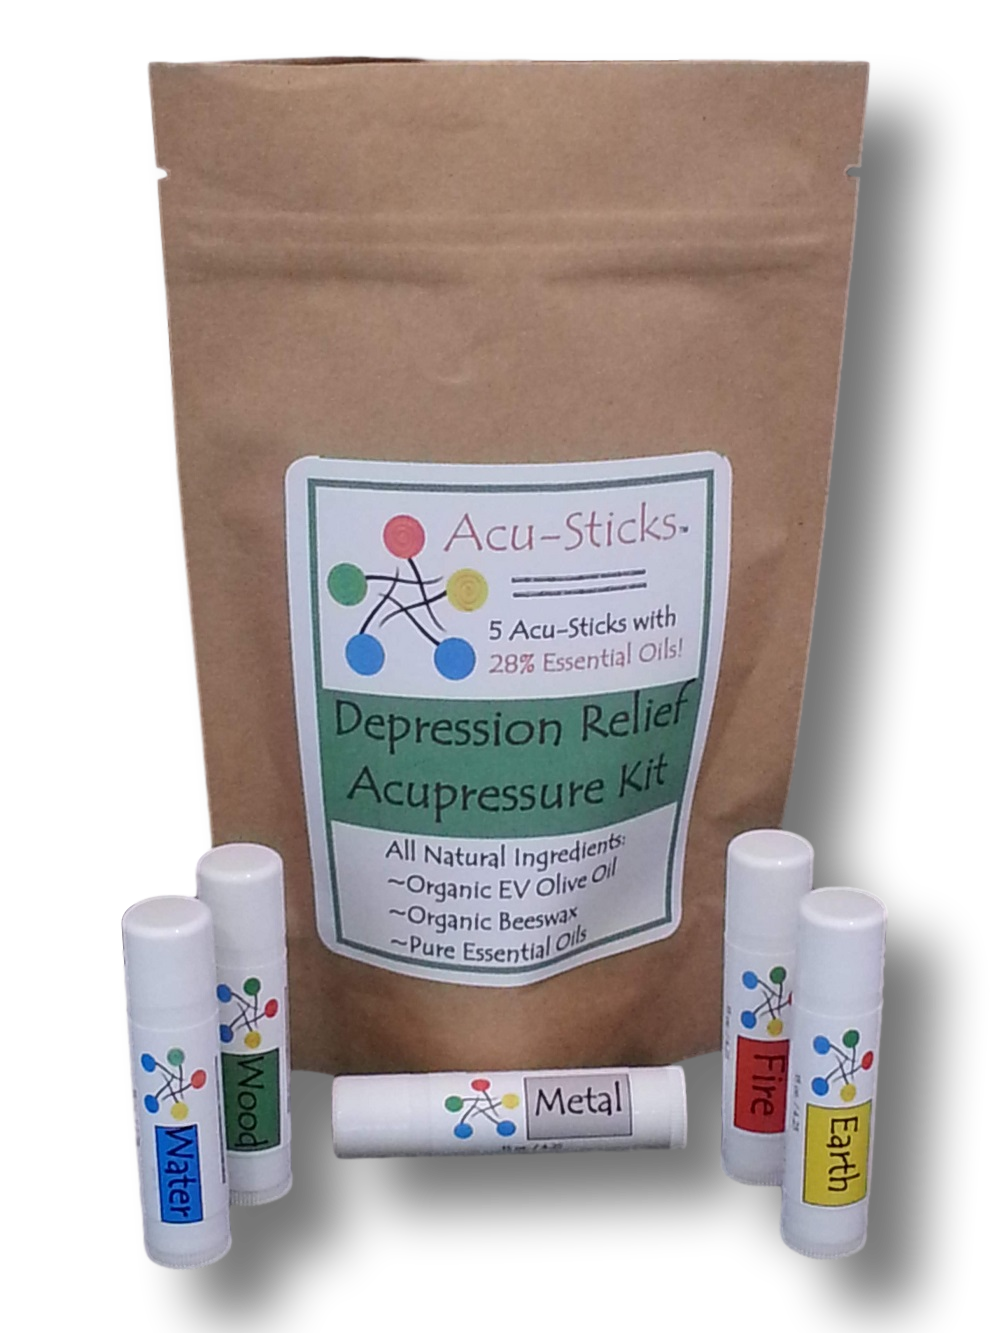 depression-relief-acupressure kit with essential oils